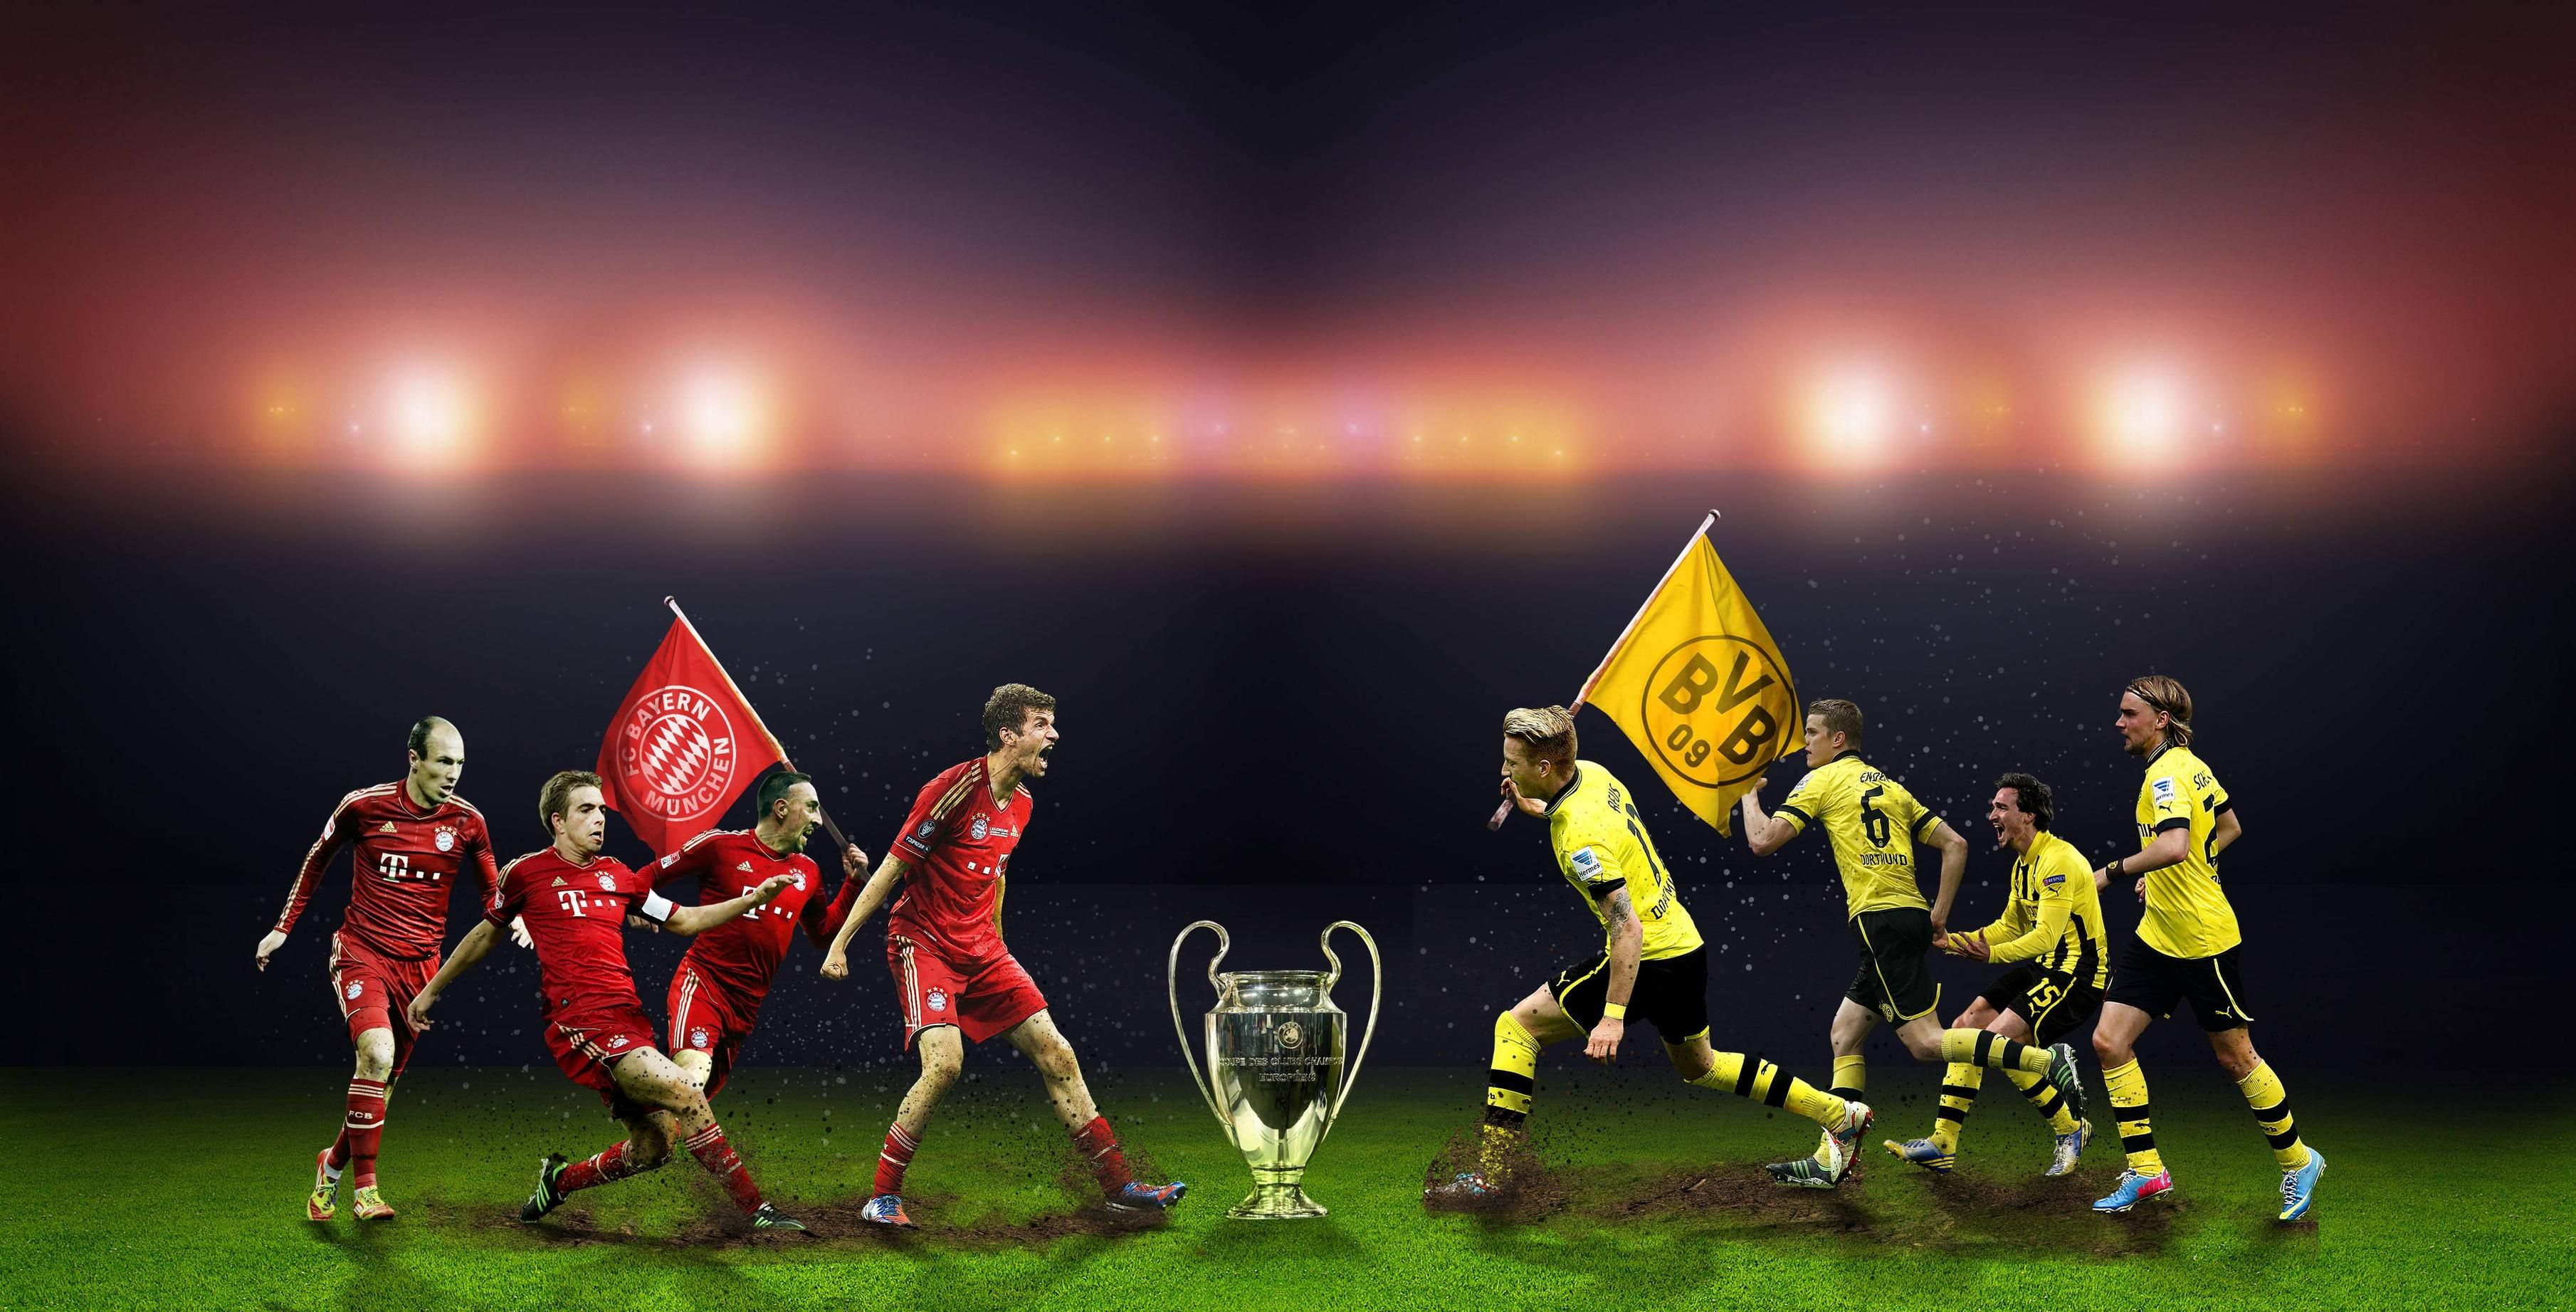 The UEFA CHAMPIONS LEAGUE IS BACK! GET YOUR TICKETS NOW